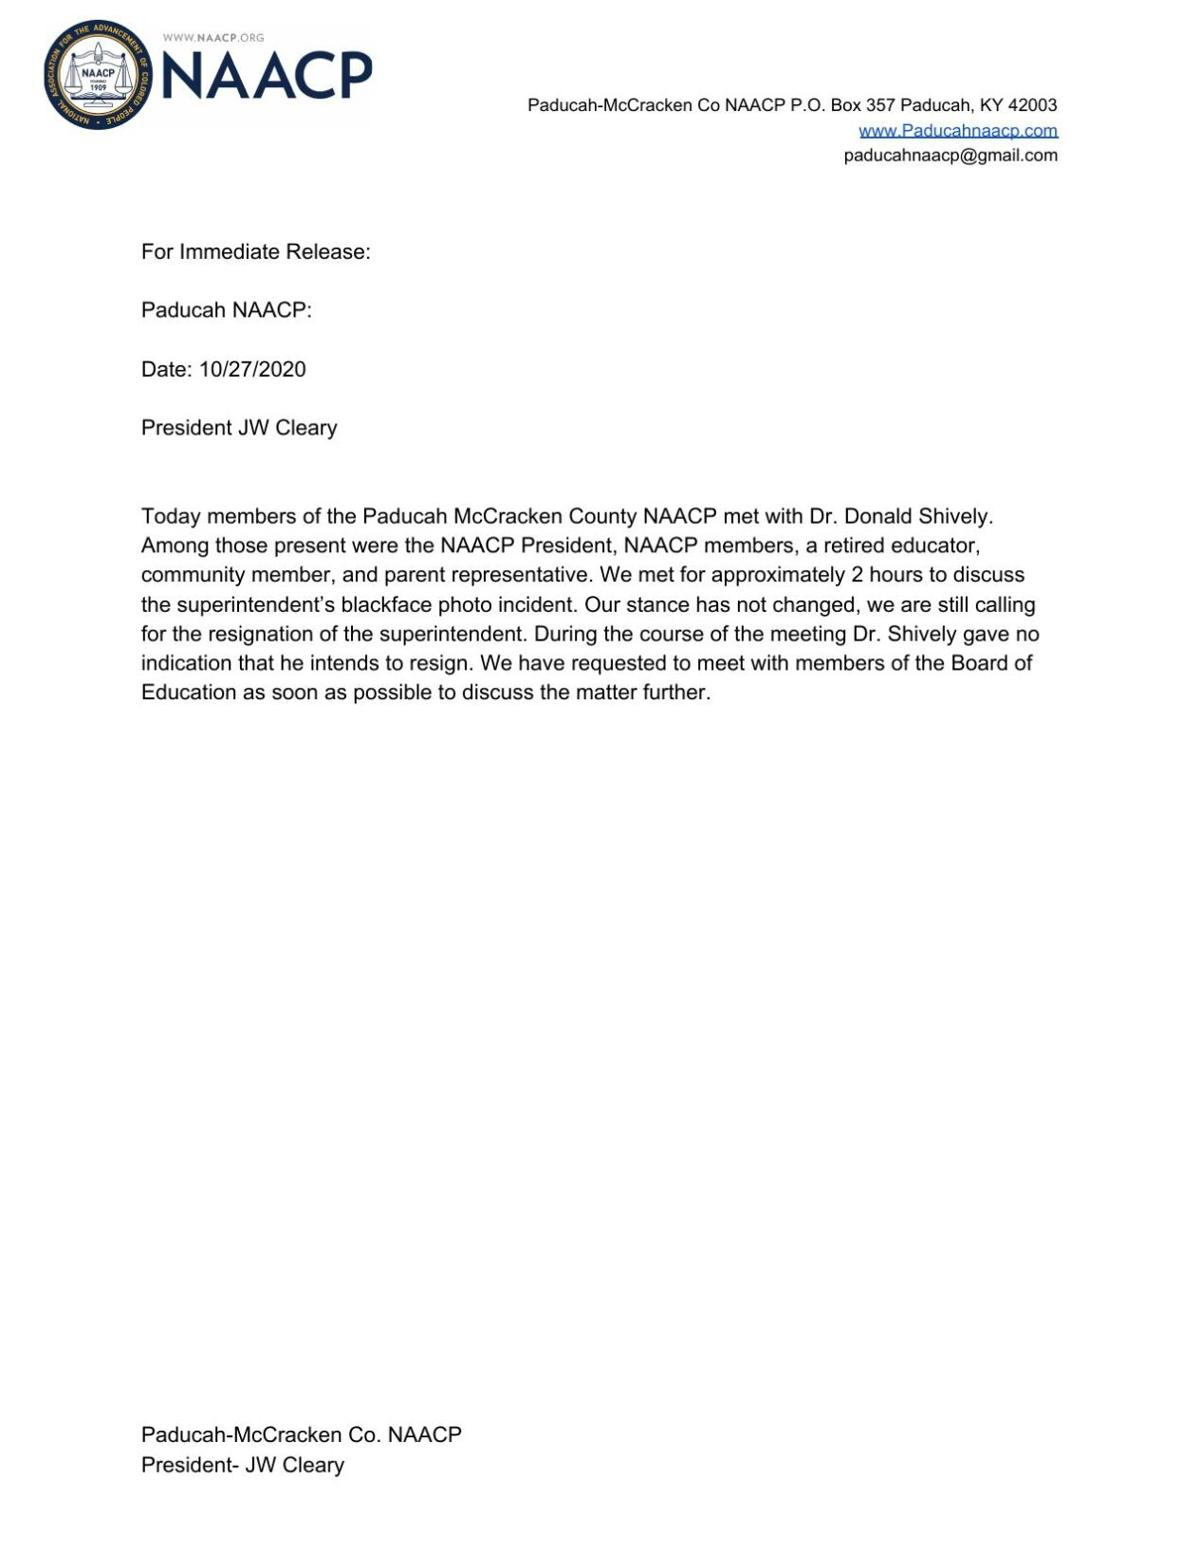 Paducah-McCracken County NAACP Shively meeting statement